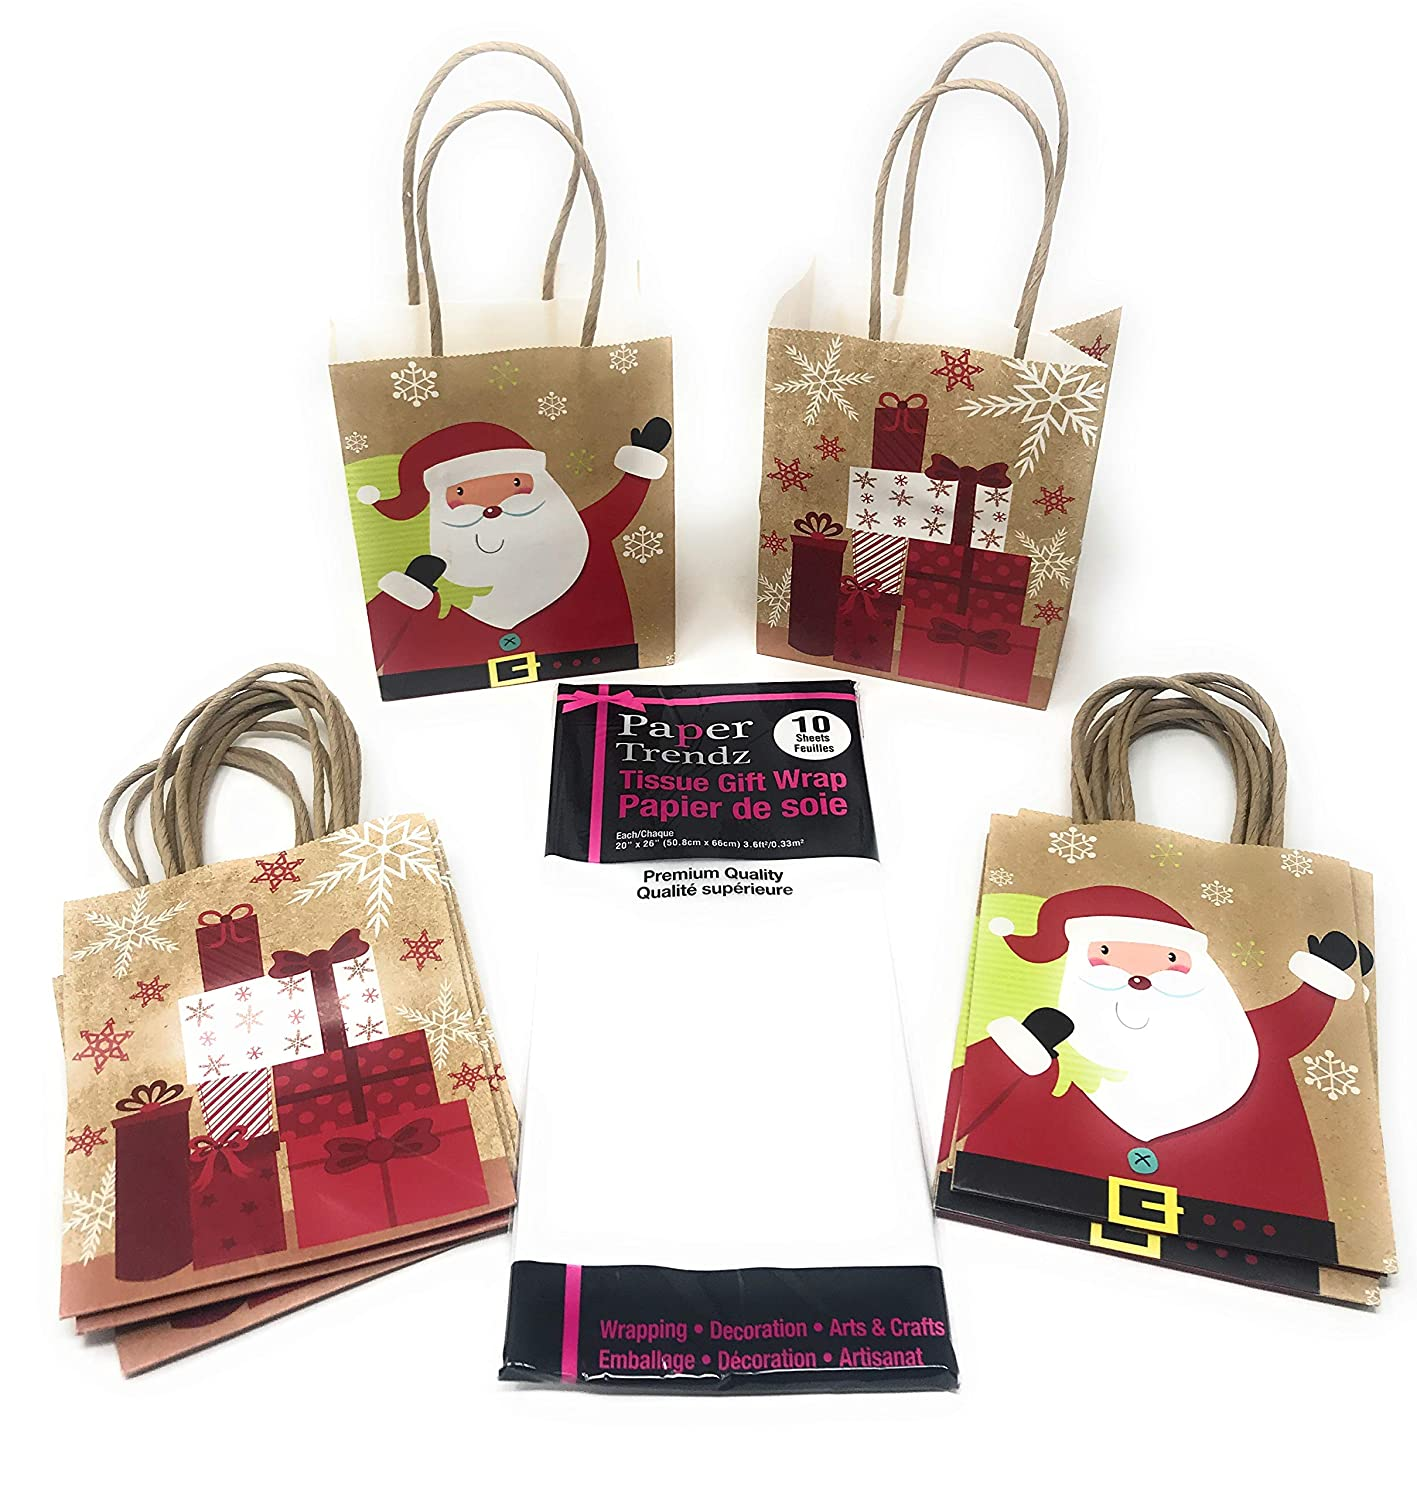 Christmas Gift Bag Bundle Set - Includes 12 Small Bags (2 styles) + 1 Pack of White Tissue Paper Various